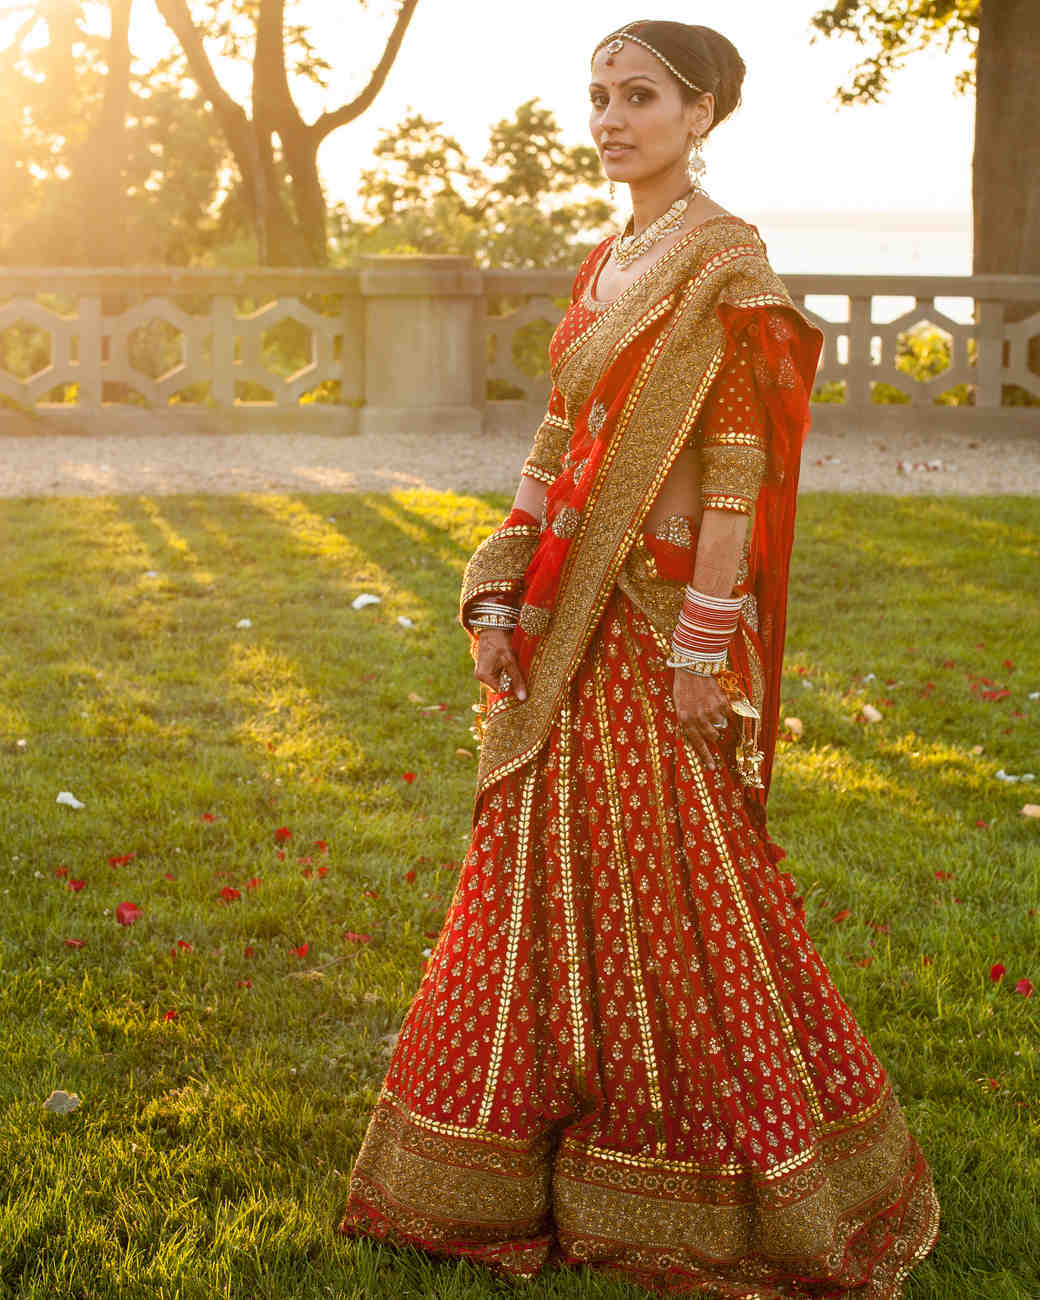 White Indian Wedding Dresses: Common Indian Wedding Traditions